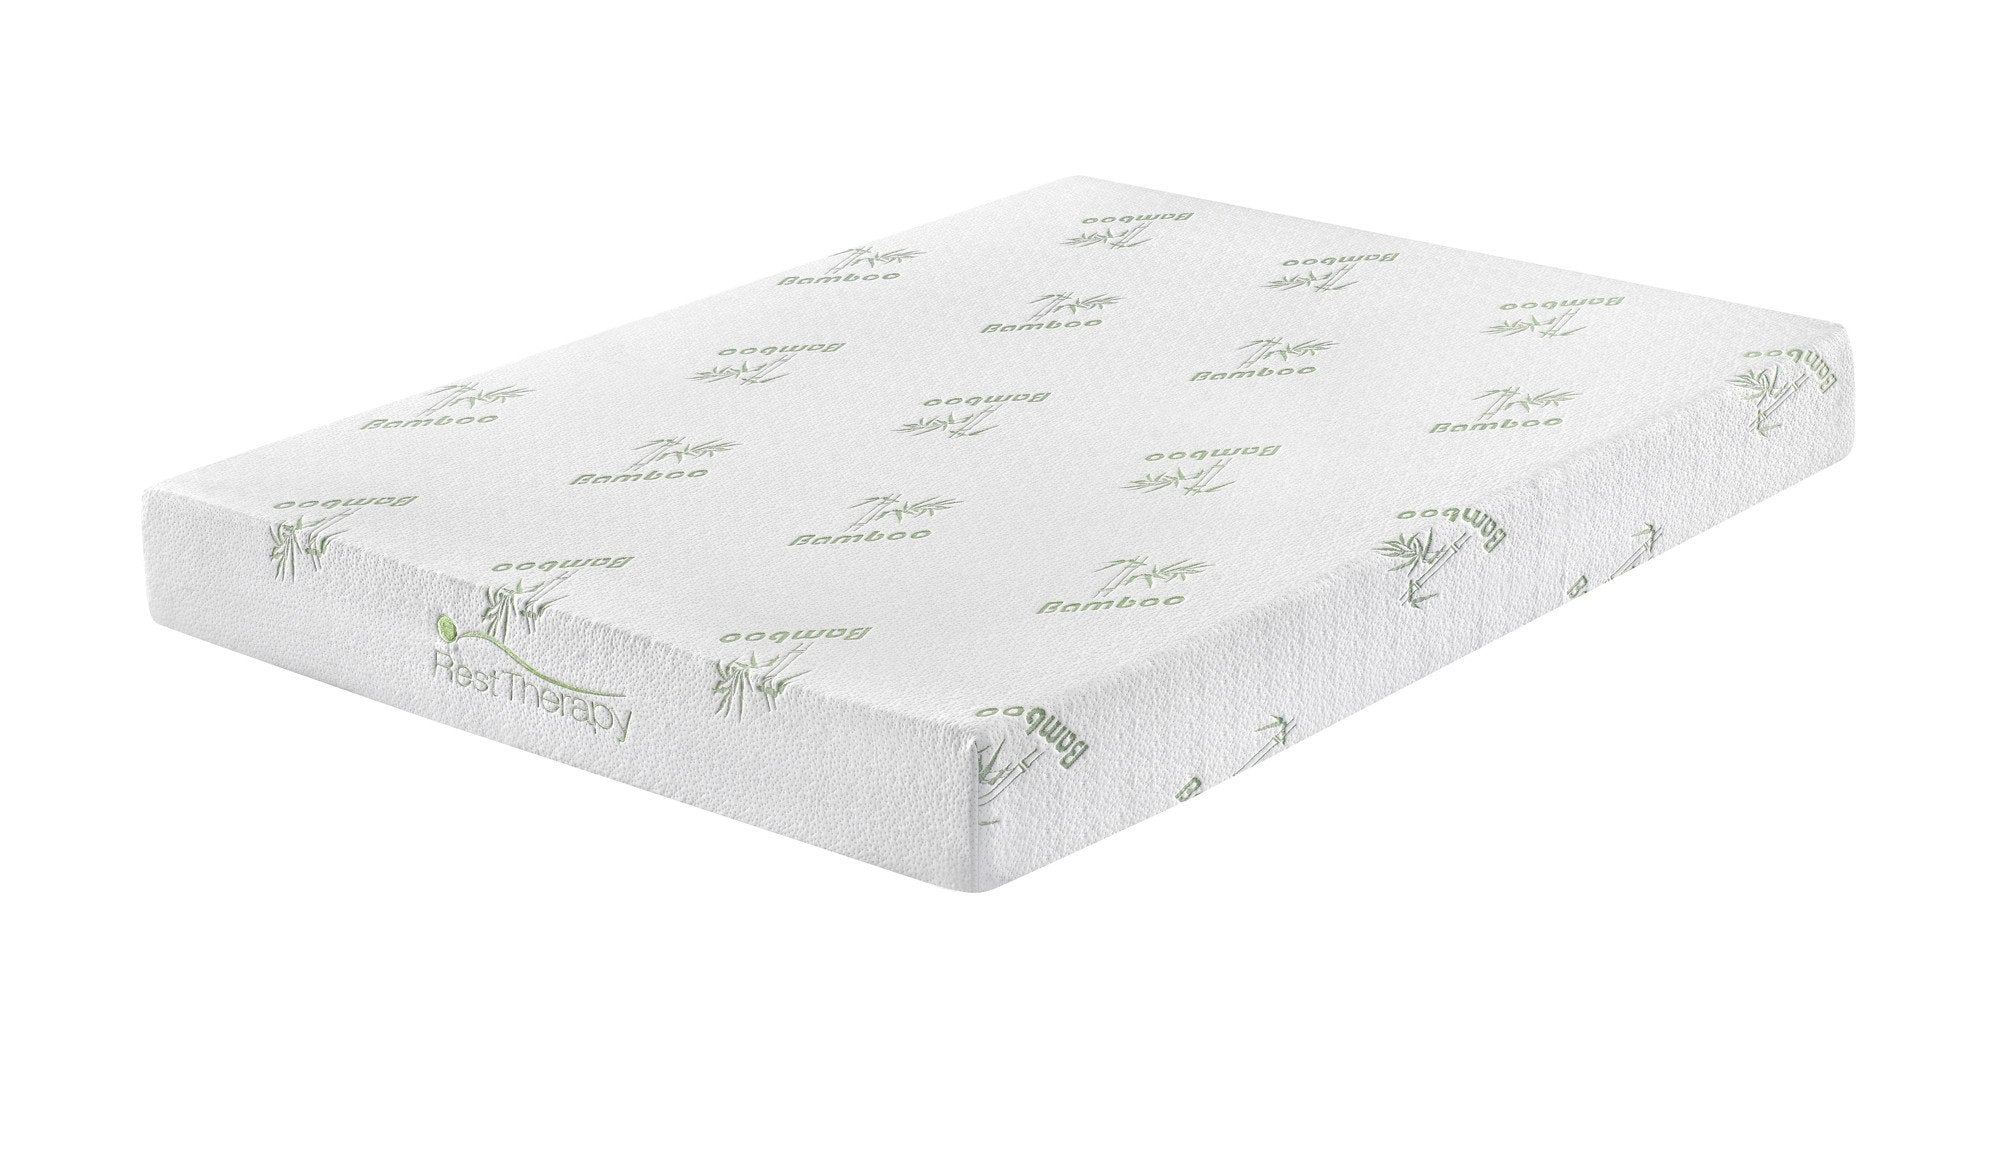 Bamboo Memory Foam Mattress Pad Bamboo Memory Foam Topper Deal Bamboo Memory Foam Topper Deal